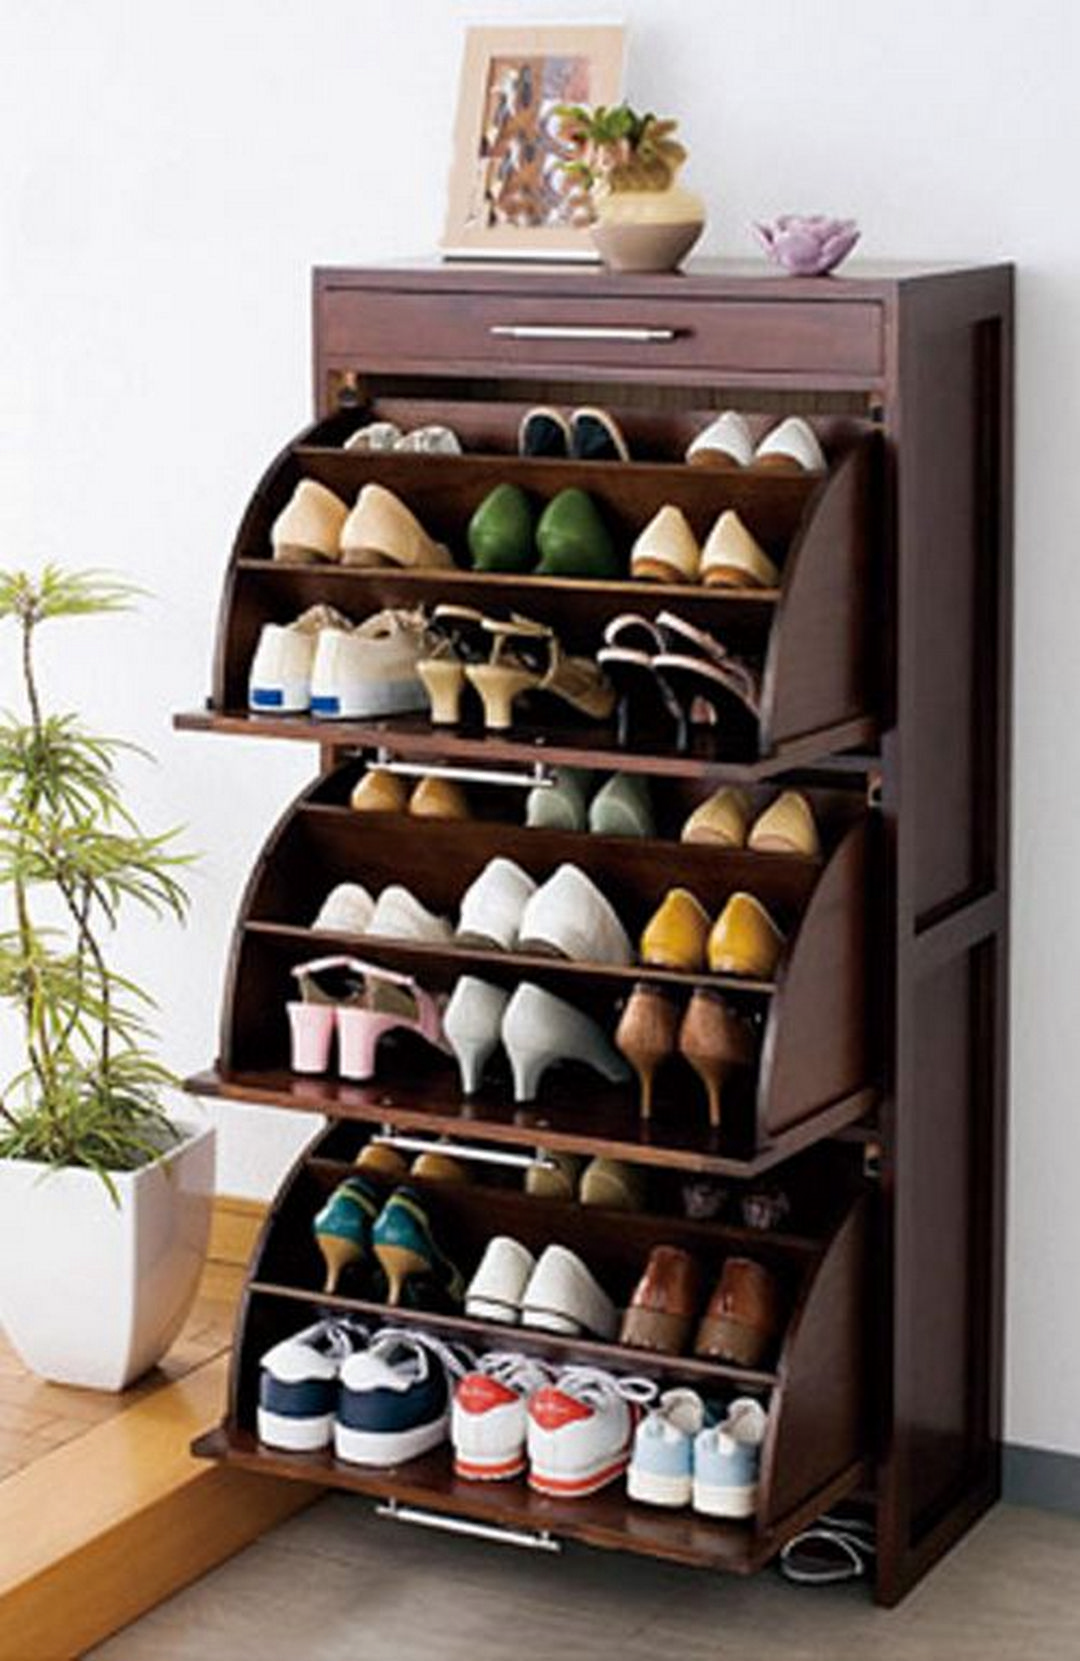 58 Brilliant Shoes Rack Design Ideas | Pinterest | Shoe rack ...